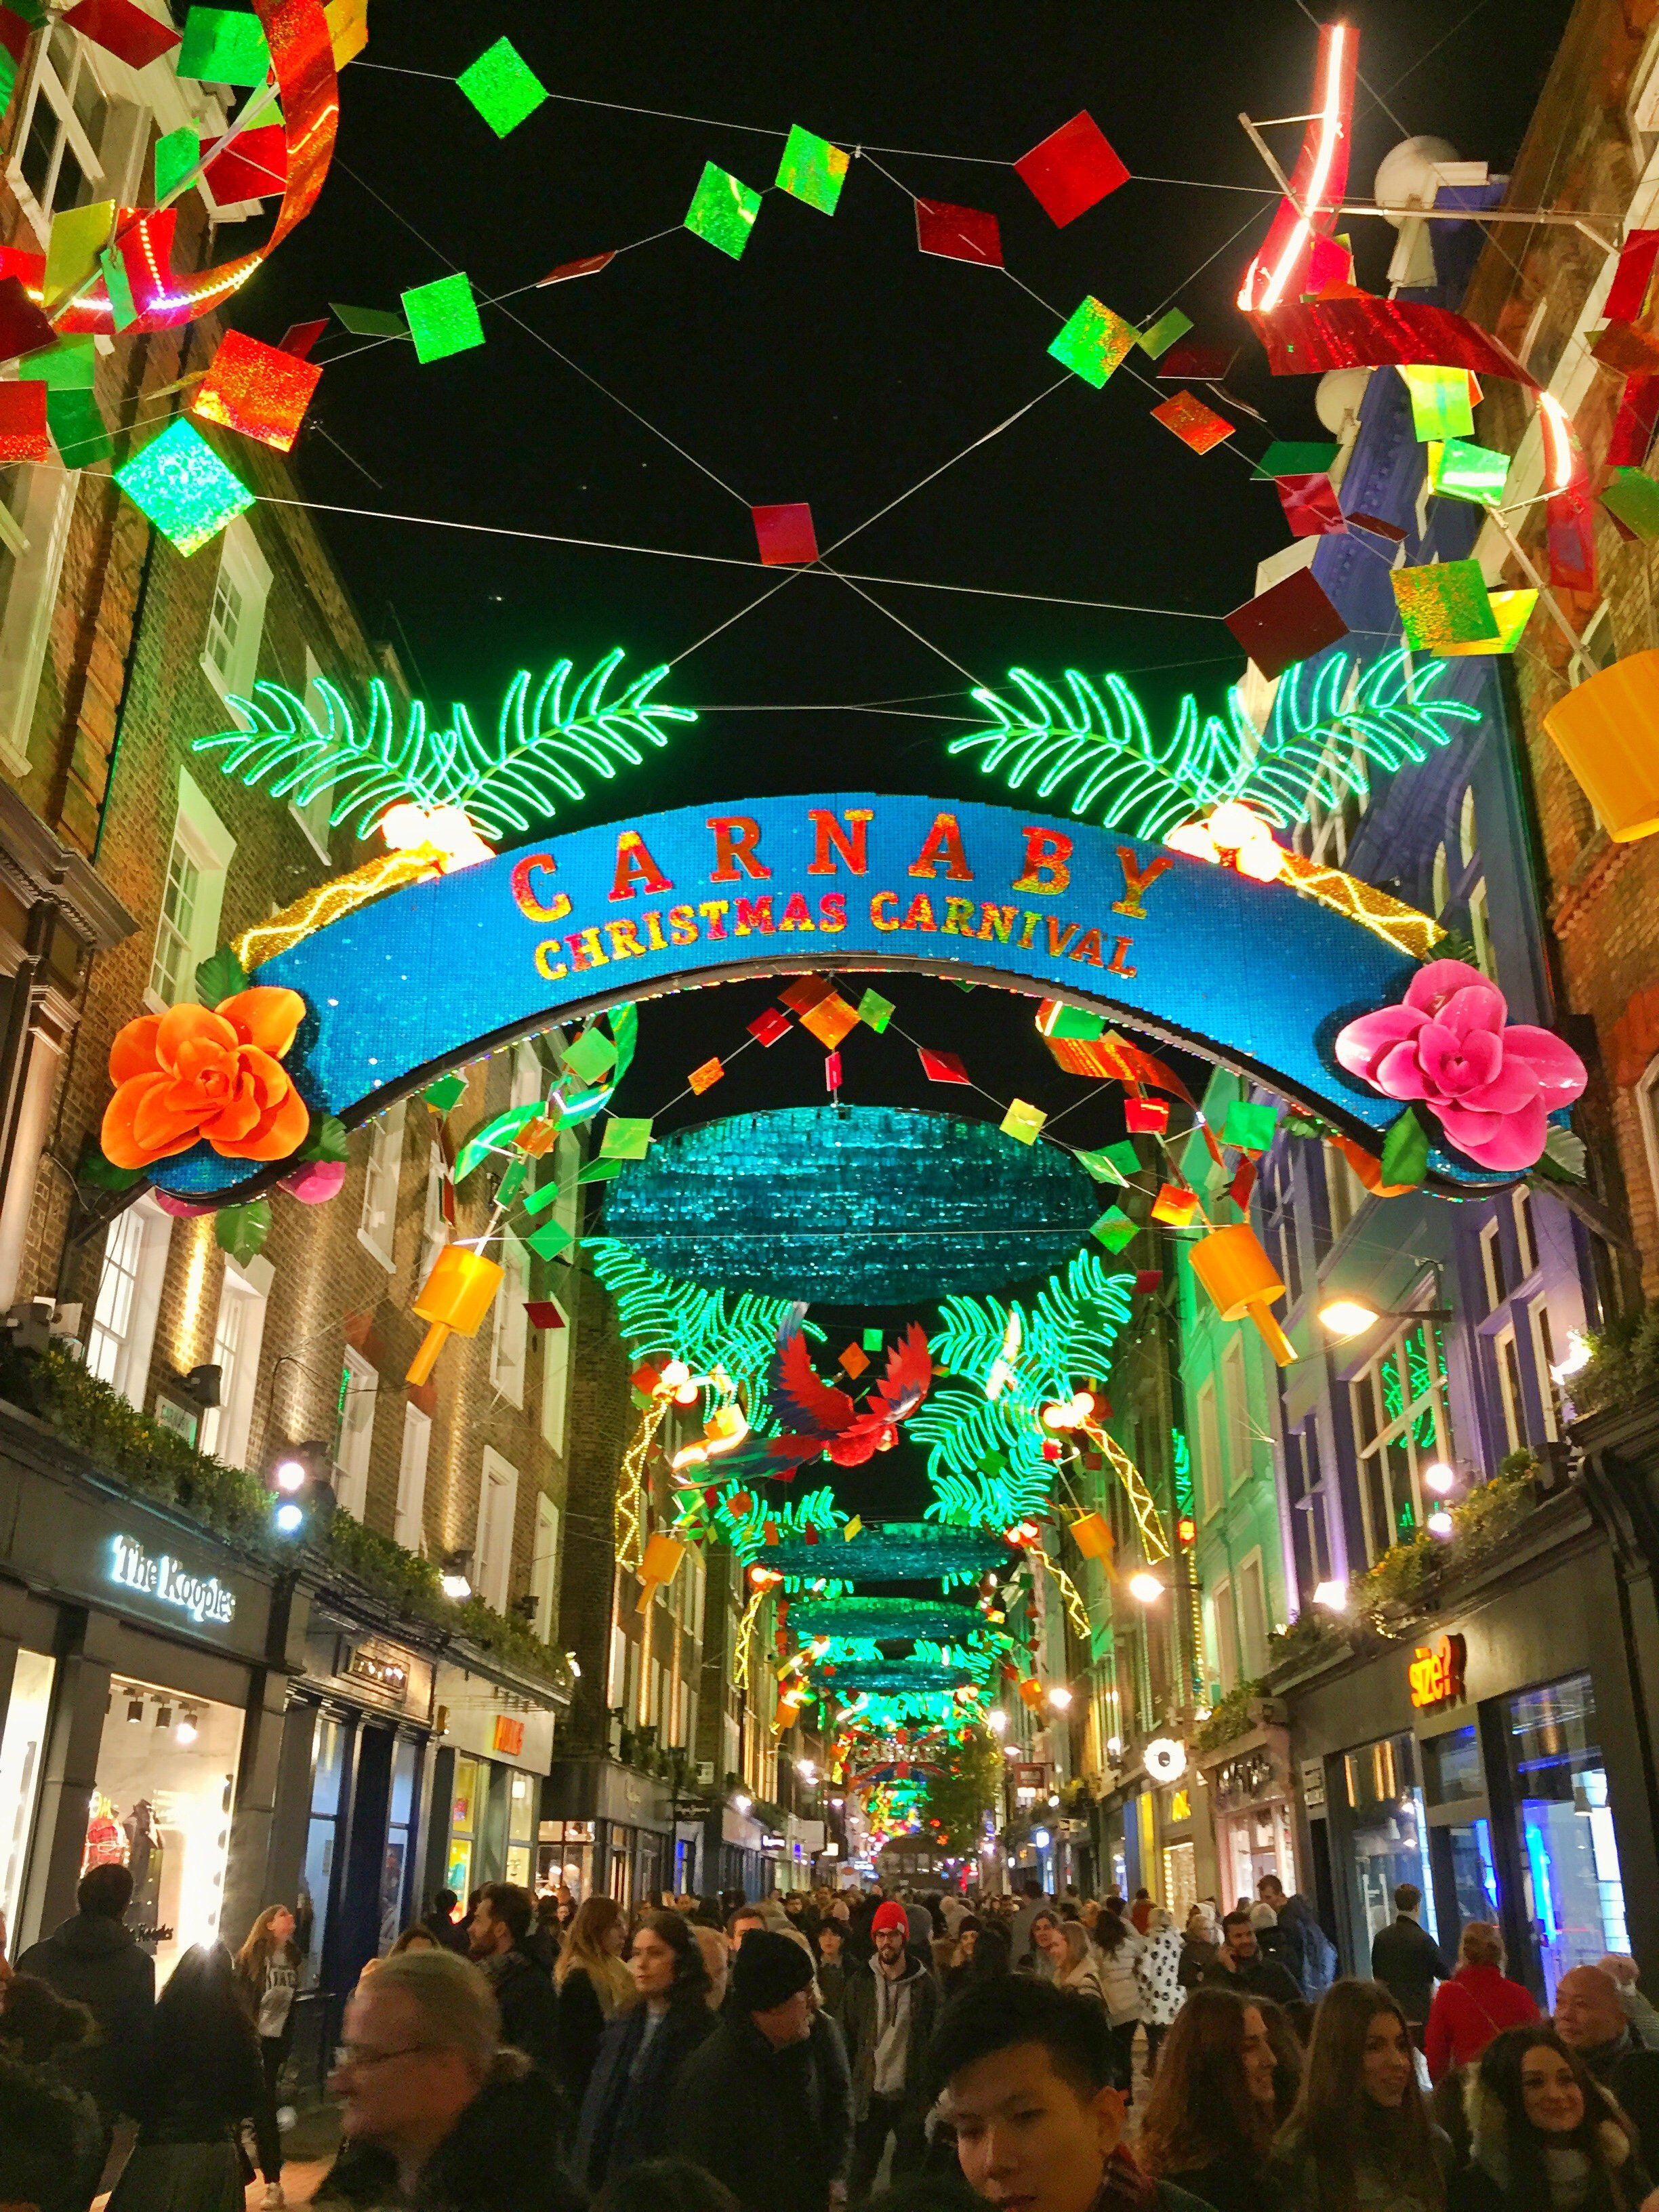 The colourful carnival festive lights of Carnaby Street